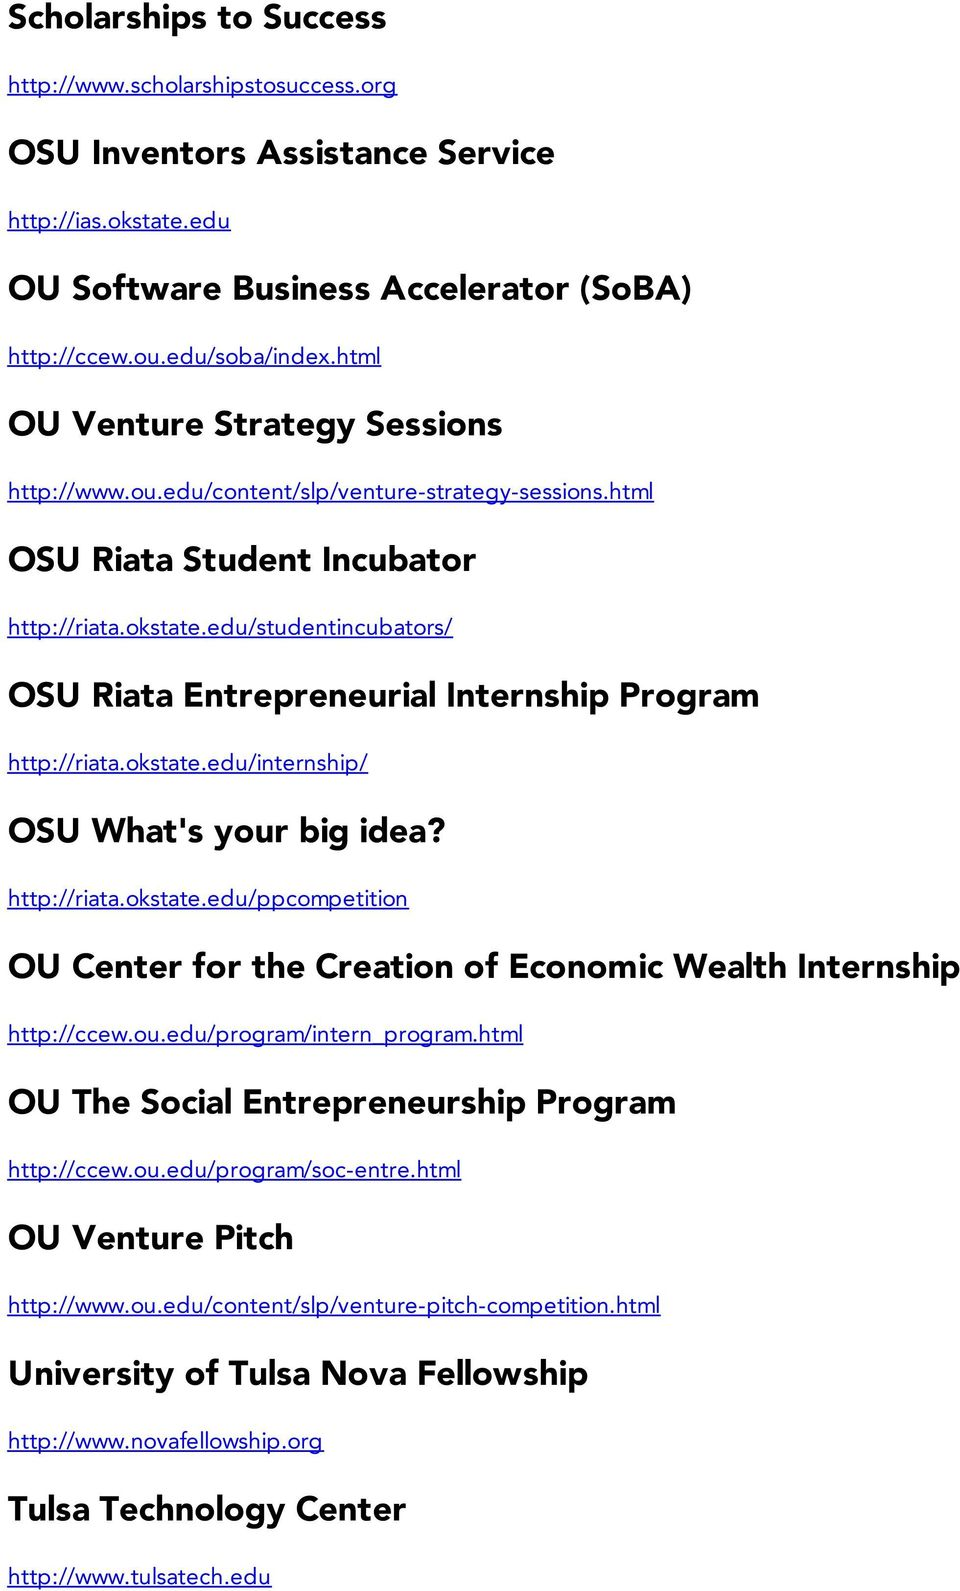 edu/studentincubators/ OSU Riata Entrepreneurial Internship Program http://riata.okstate.edu/internship/ OSU What's your big idea? http://riata.okstate.edu/ppcompetition OU Center for the Creation of Economic Wealth Internship http://ccew.